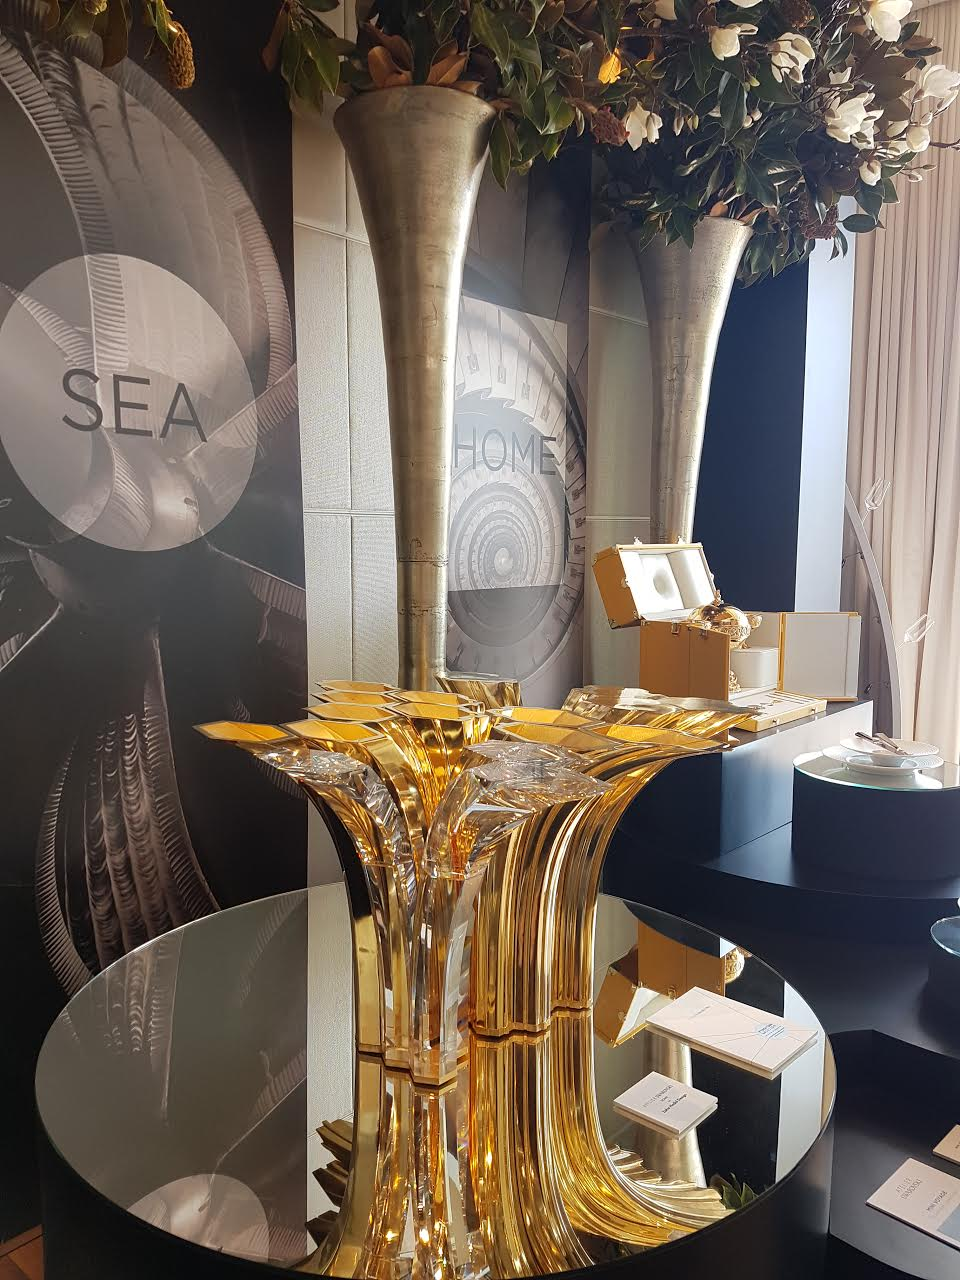 HOUSE OF EXCELLENCE – BOUTSEN DESIGN'S SAVOIR-FAIRE SHOWCASE BRINGING TOGETHER THE BEST IN LUXURY & DESIGN